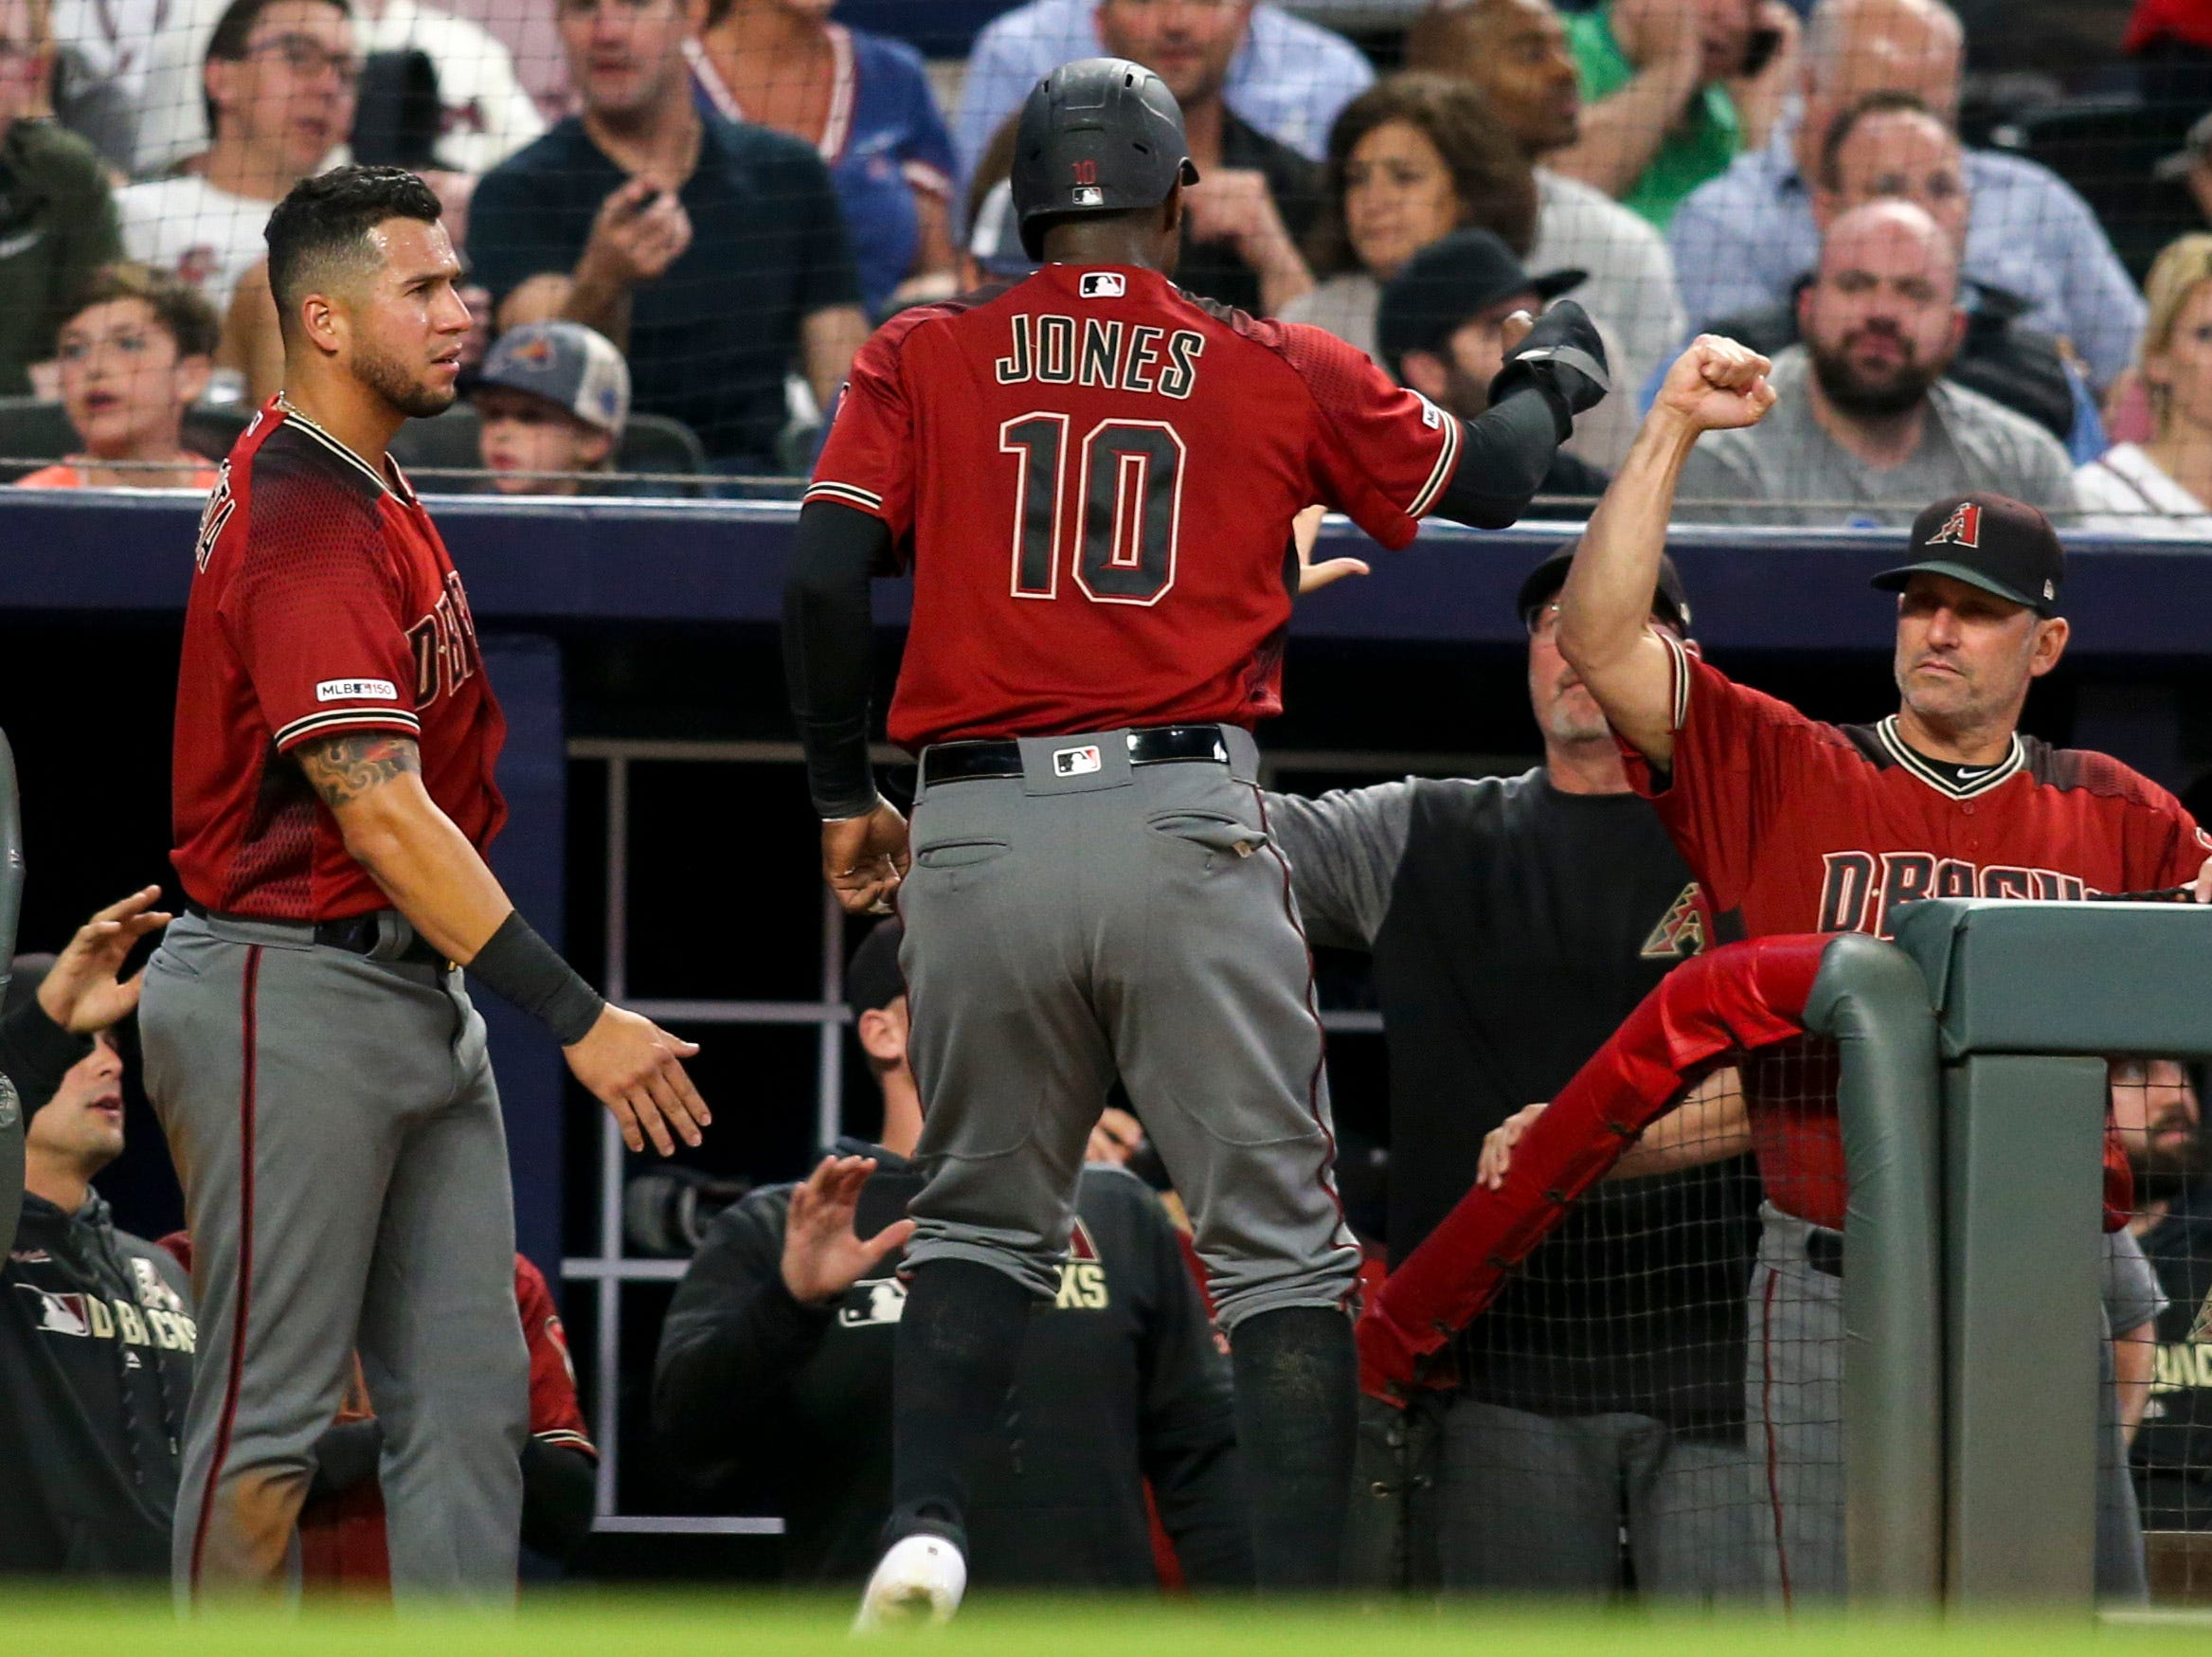 Apr 17, 2019; Atlanta, GA, USA; Arizona Diamondbacks right fielder Adam Jones (10) celebrates with manager Torey Lovullo (17) after scoring a run against the Atlanta Braves in the seventh inning at SunTrust Park. Mandatory Credit: Brett Davis-USA TODAY Sports